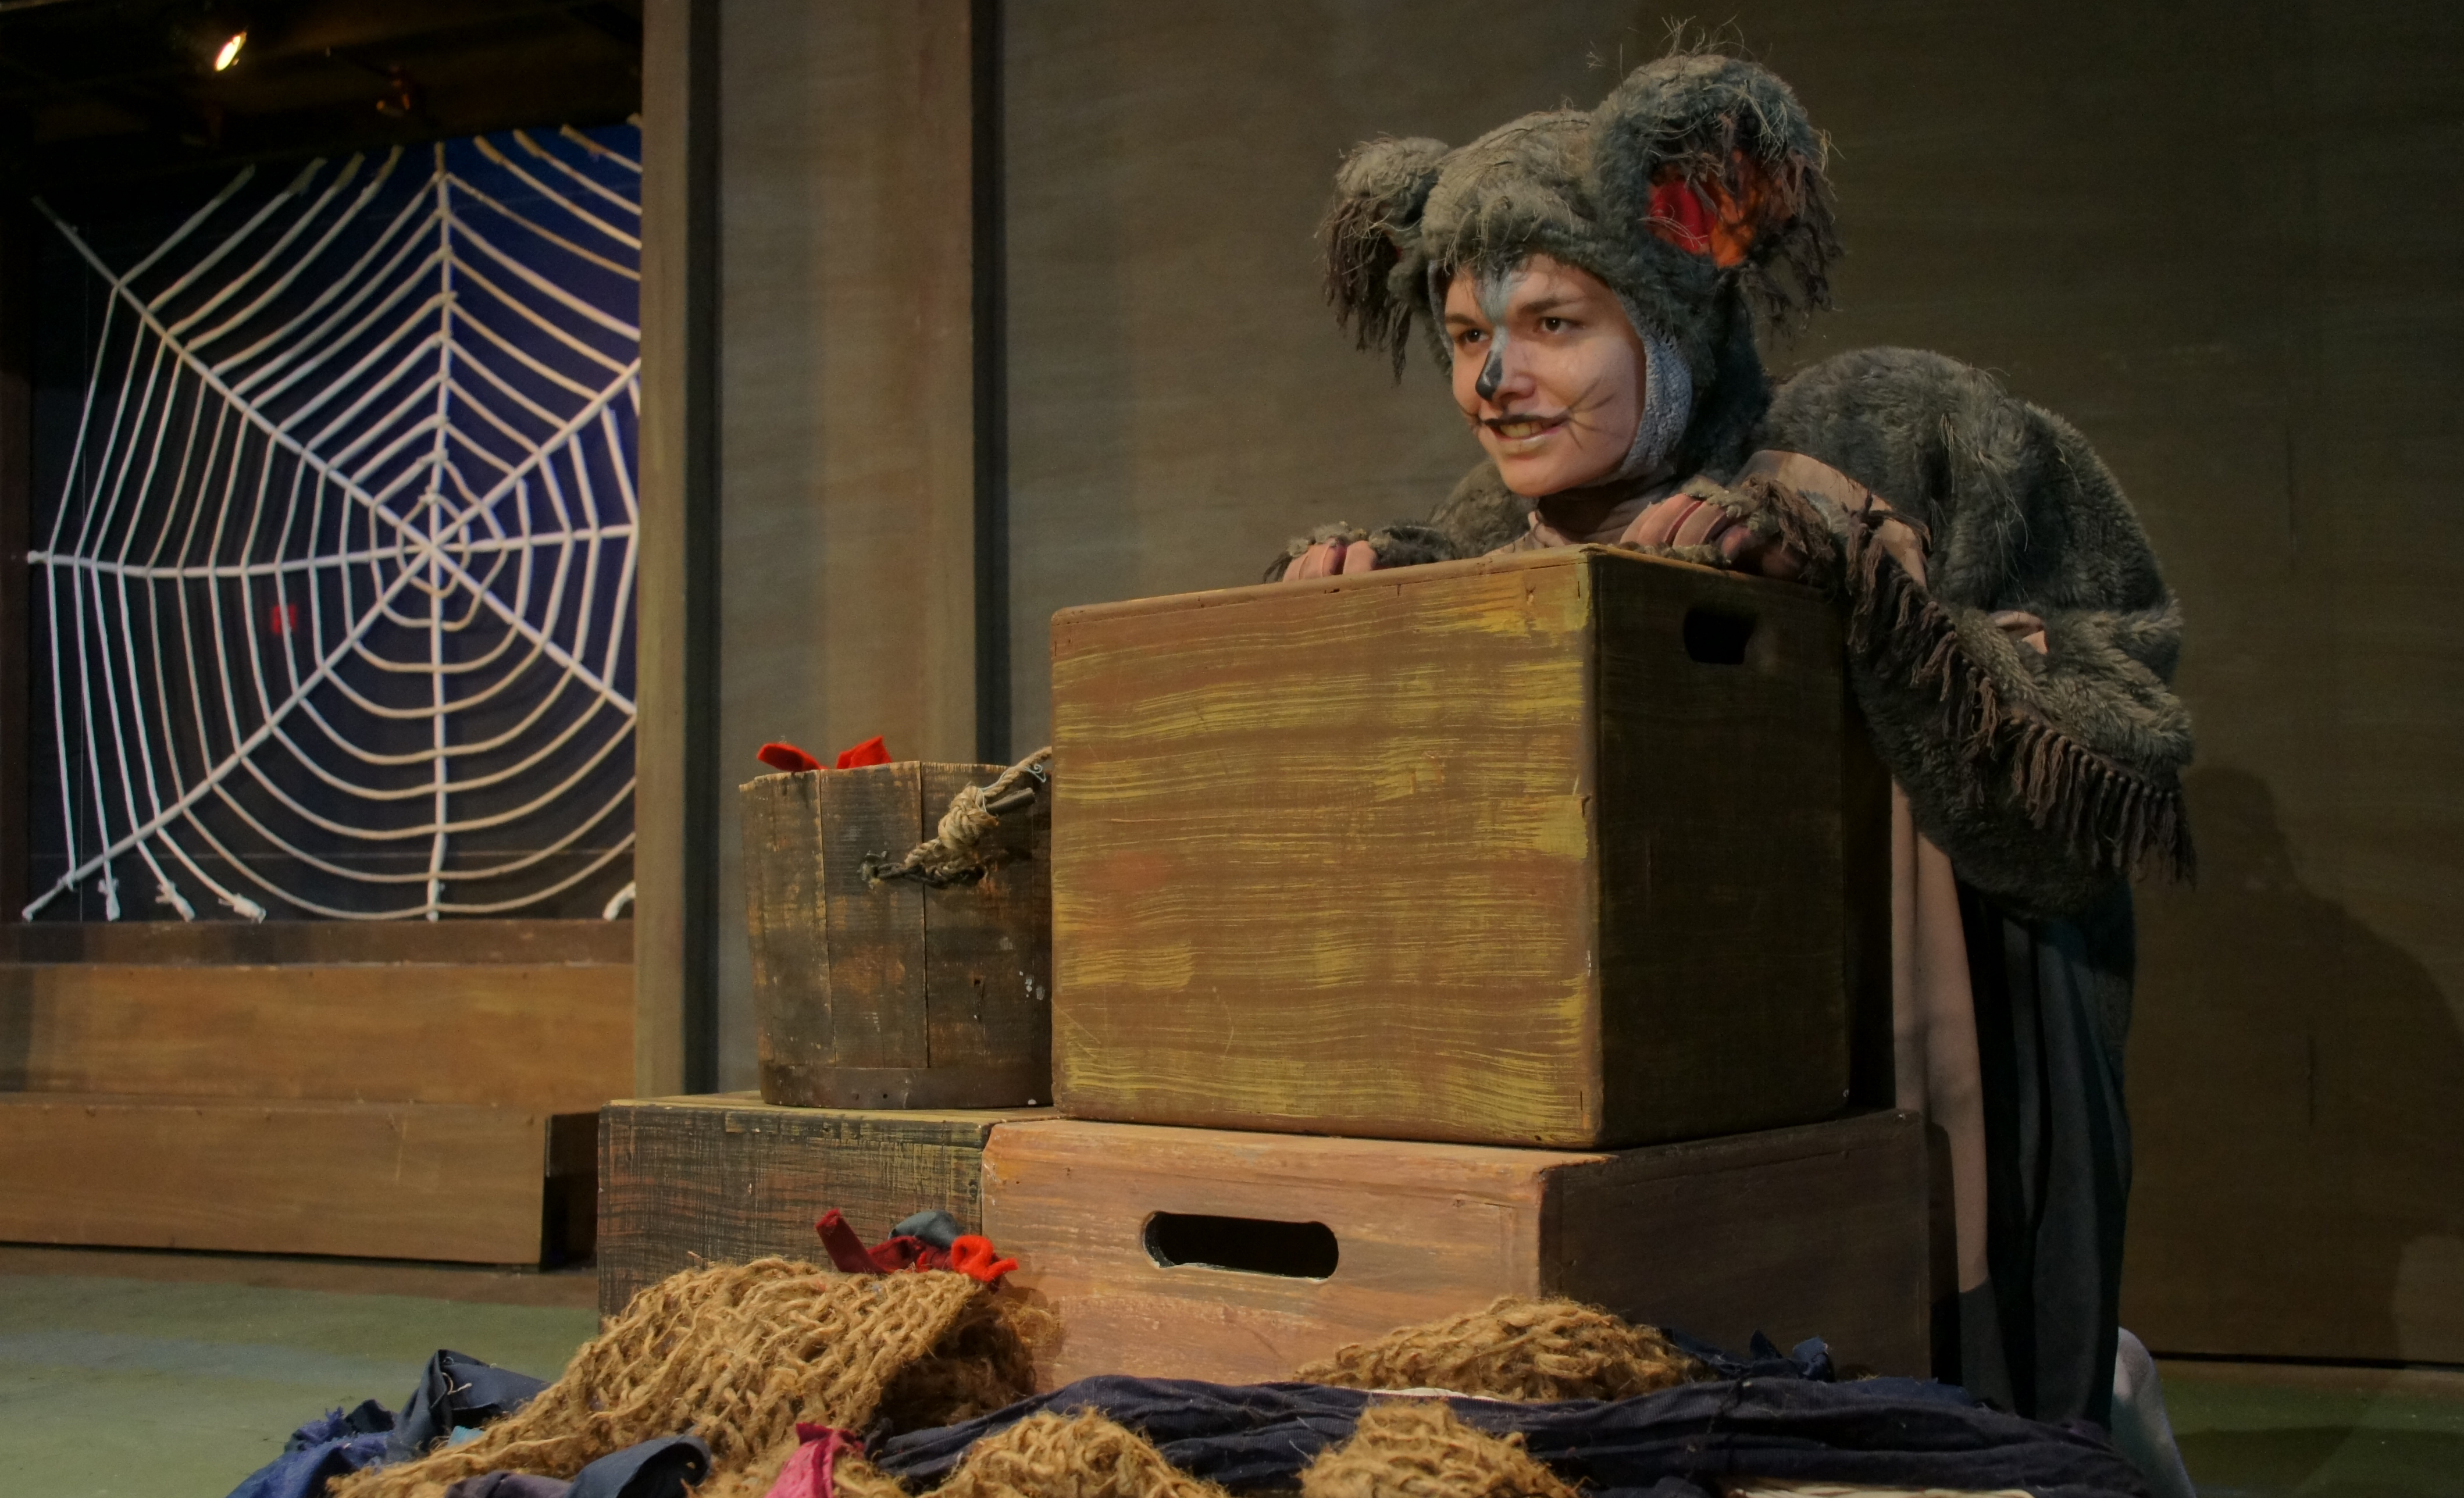 Photo of actor in Templeton costume on stage prop in front of large web.